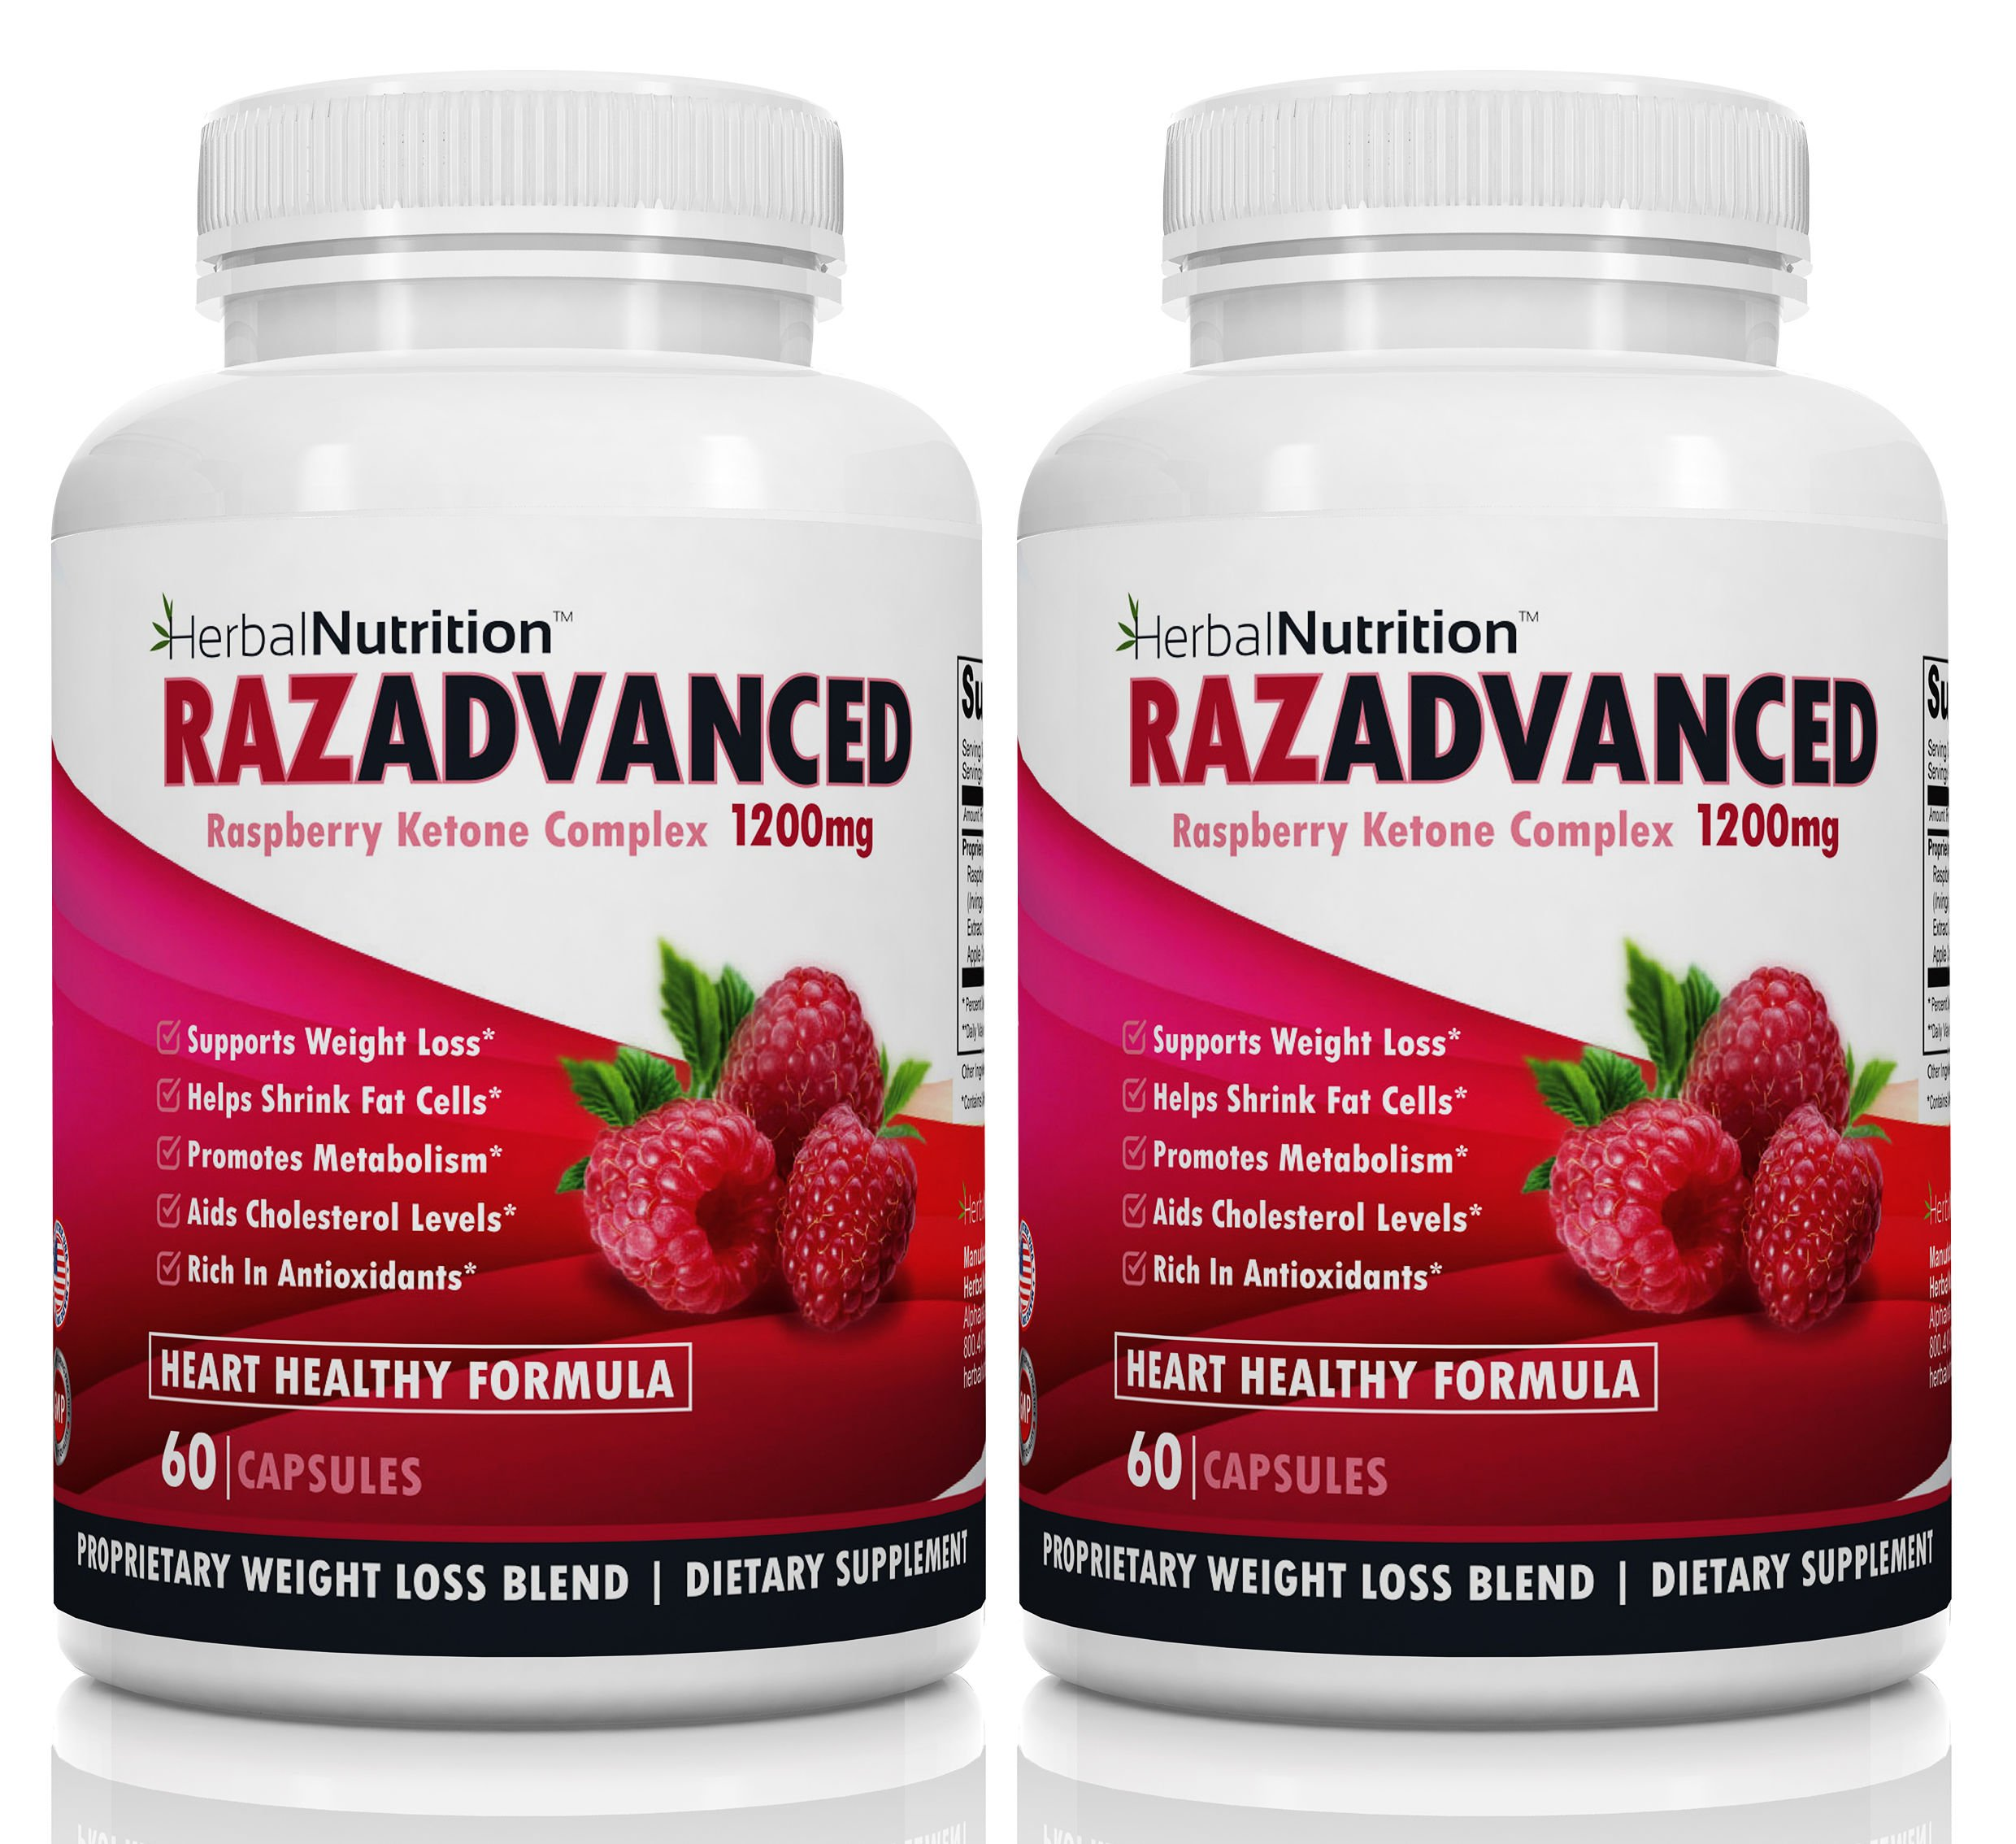 BOGO Razadvanced Raspberry Ketones Weight Loss Complex, 2 Bottle Pack, 120 Capsules, 1200mg Per Serving, Helps Burn Fat and Suppress Appetite, All-Natural Super Antioxidants, Ketones, Ships Free